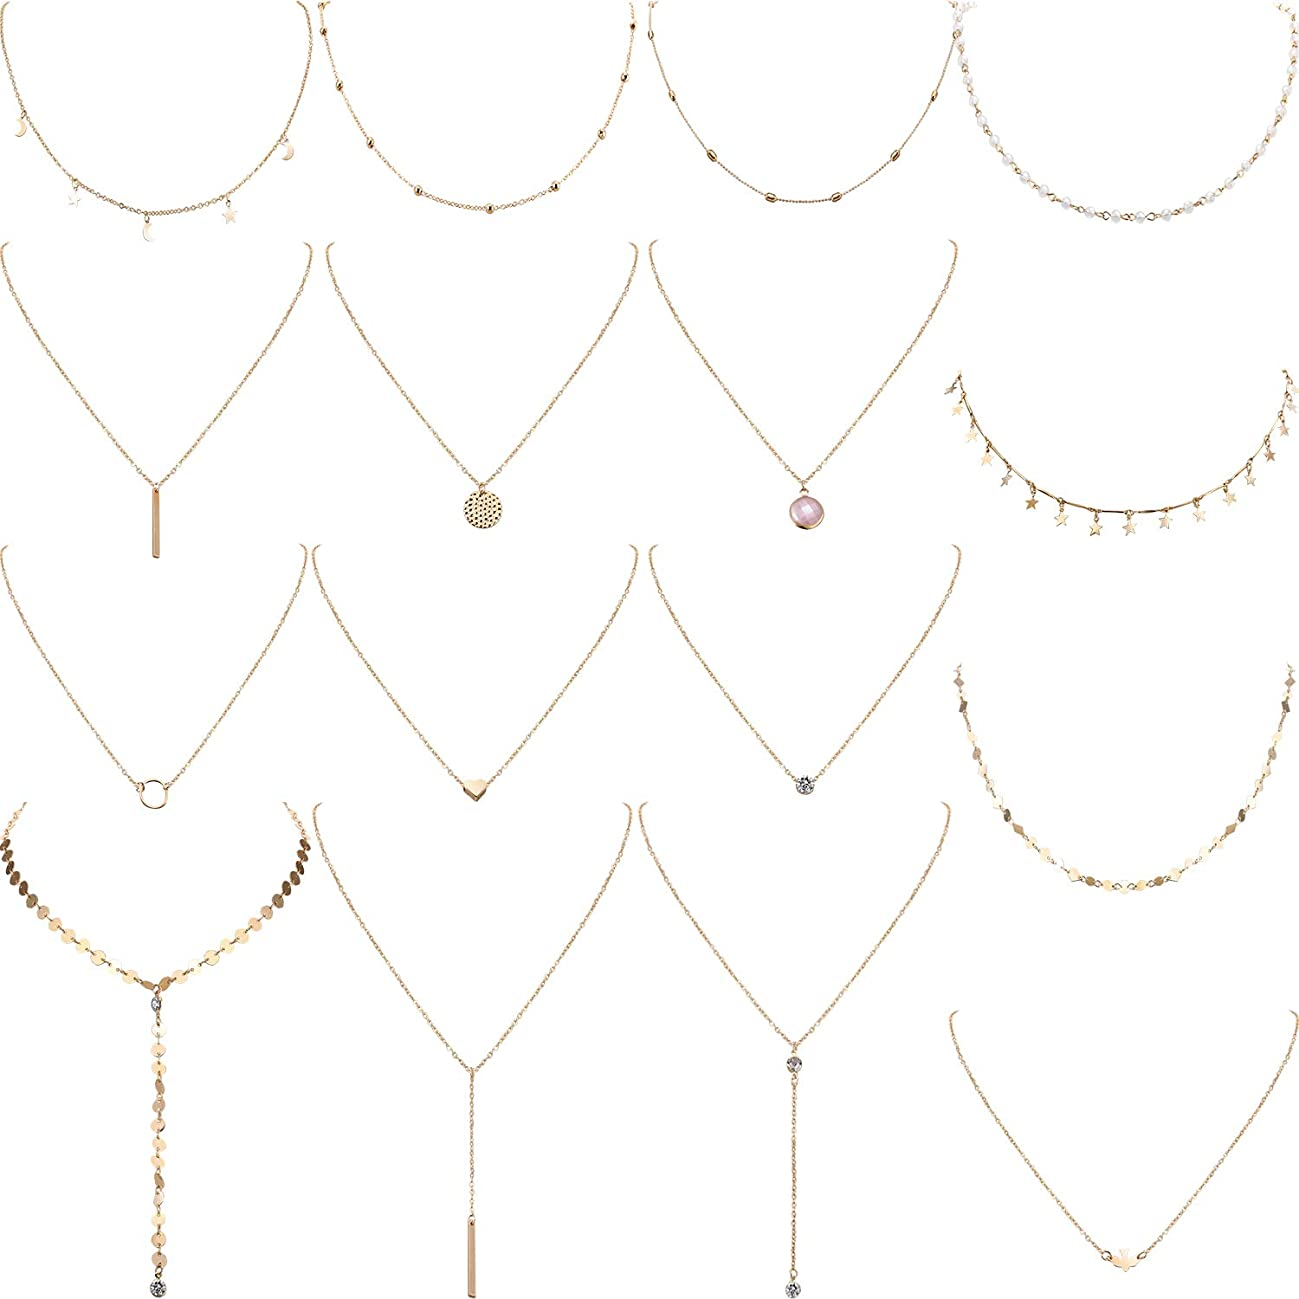 Yaomiao 16 Pieces Layered Choker Necklace Adjustable Pendant Necklace Moon Sequins Choker Multilayer Chain Necklace Set for Women Girls